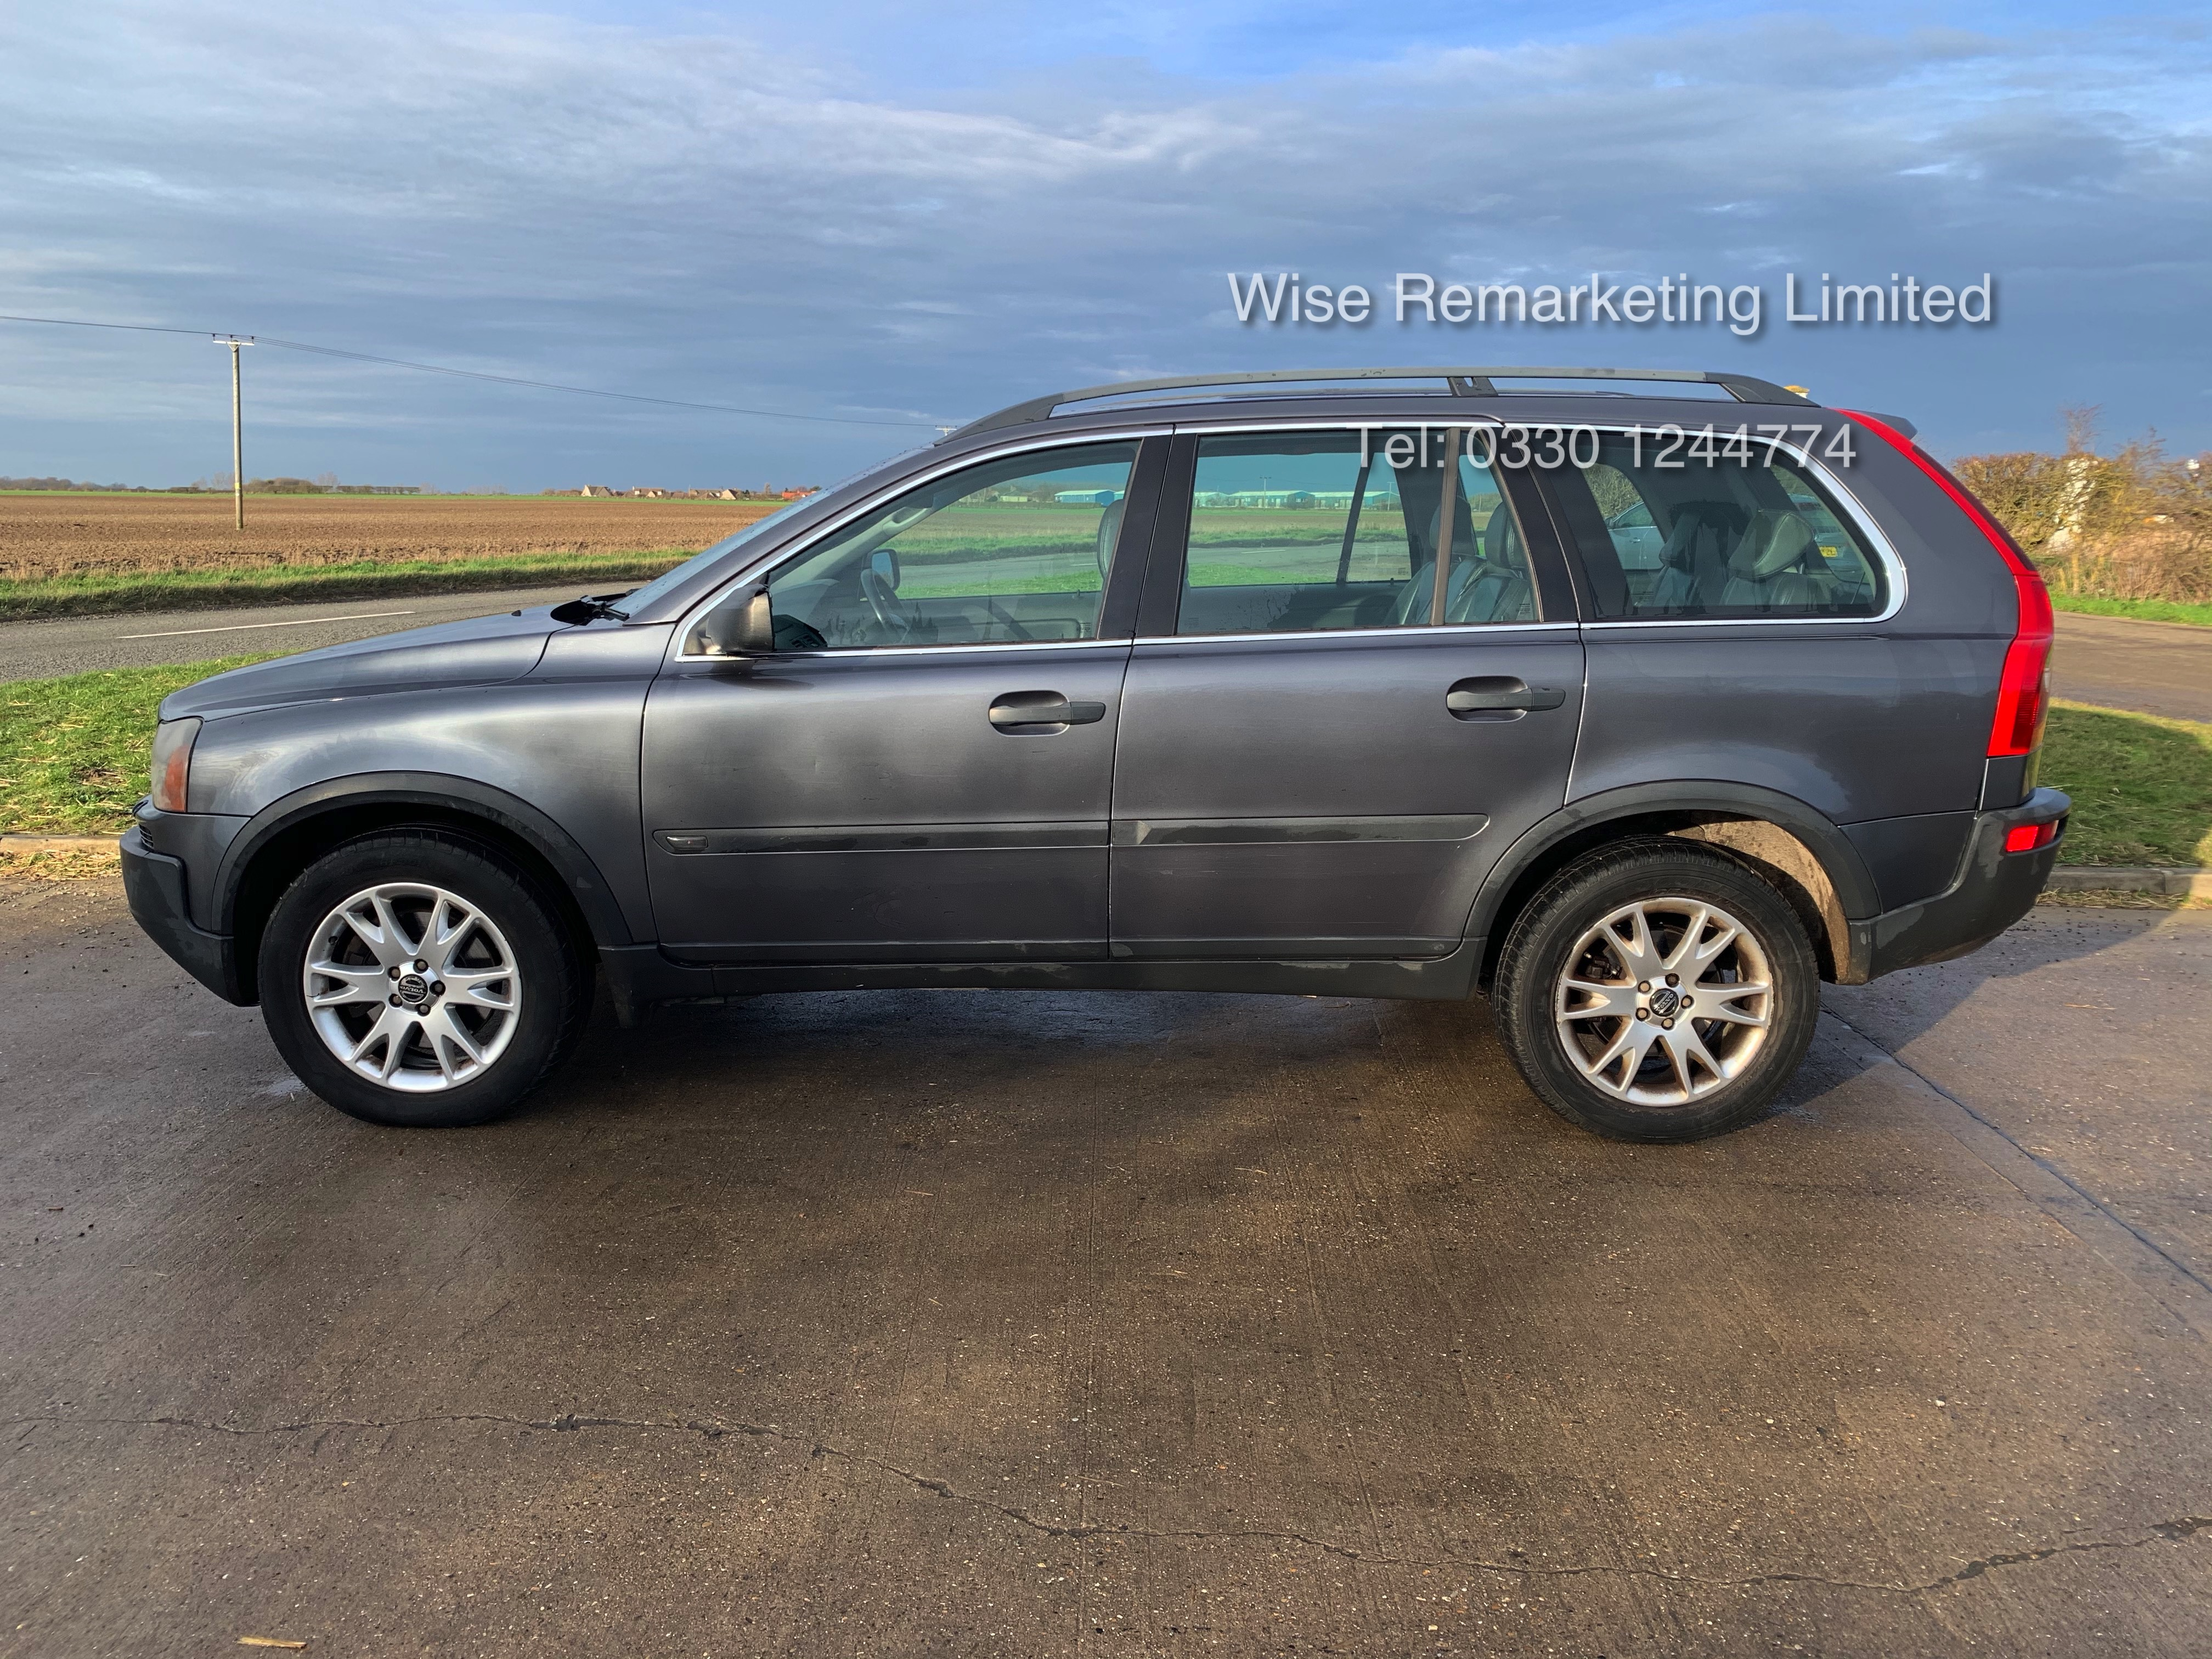 Volvo XC90 D5 2.4 Special Equipment Auto - 2005 Model - 7 Seater - Full Leather - - Image 5 of 21